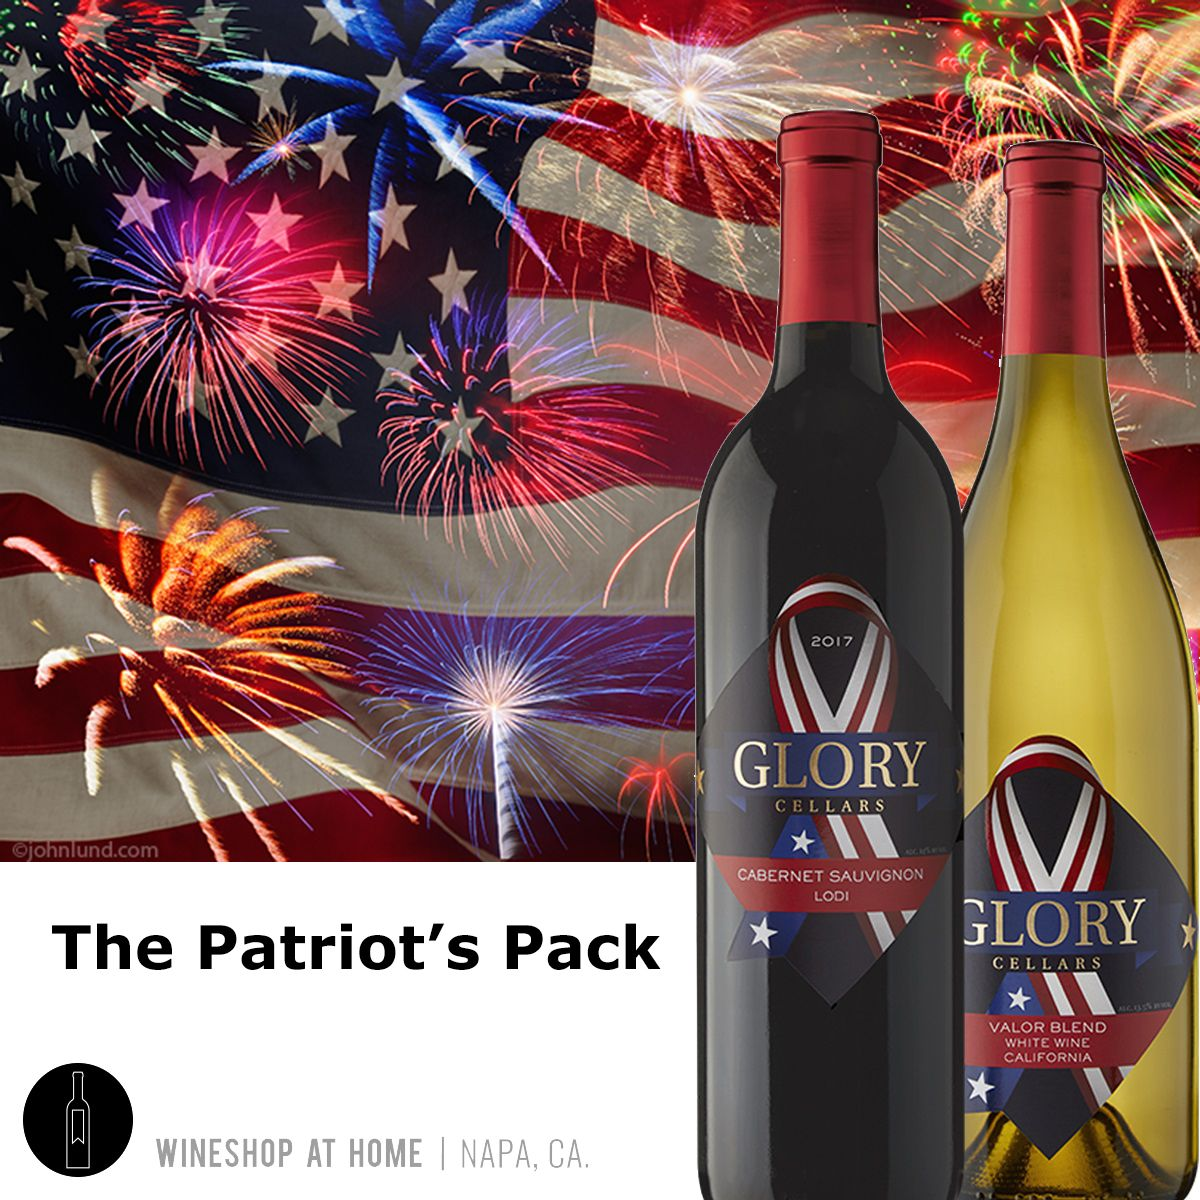 Just In Time For Independence Day Celebrations Wineshop At Home Has Released 2 New Glory Cellars Wines A Powerful You Sauvignon Cabernet Cabernet Sauvignon